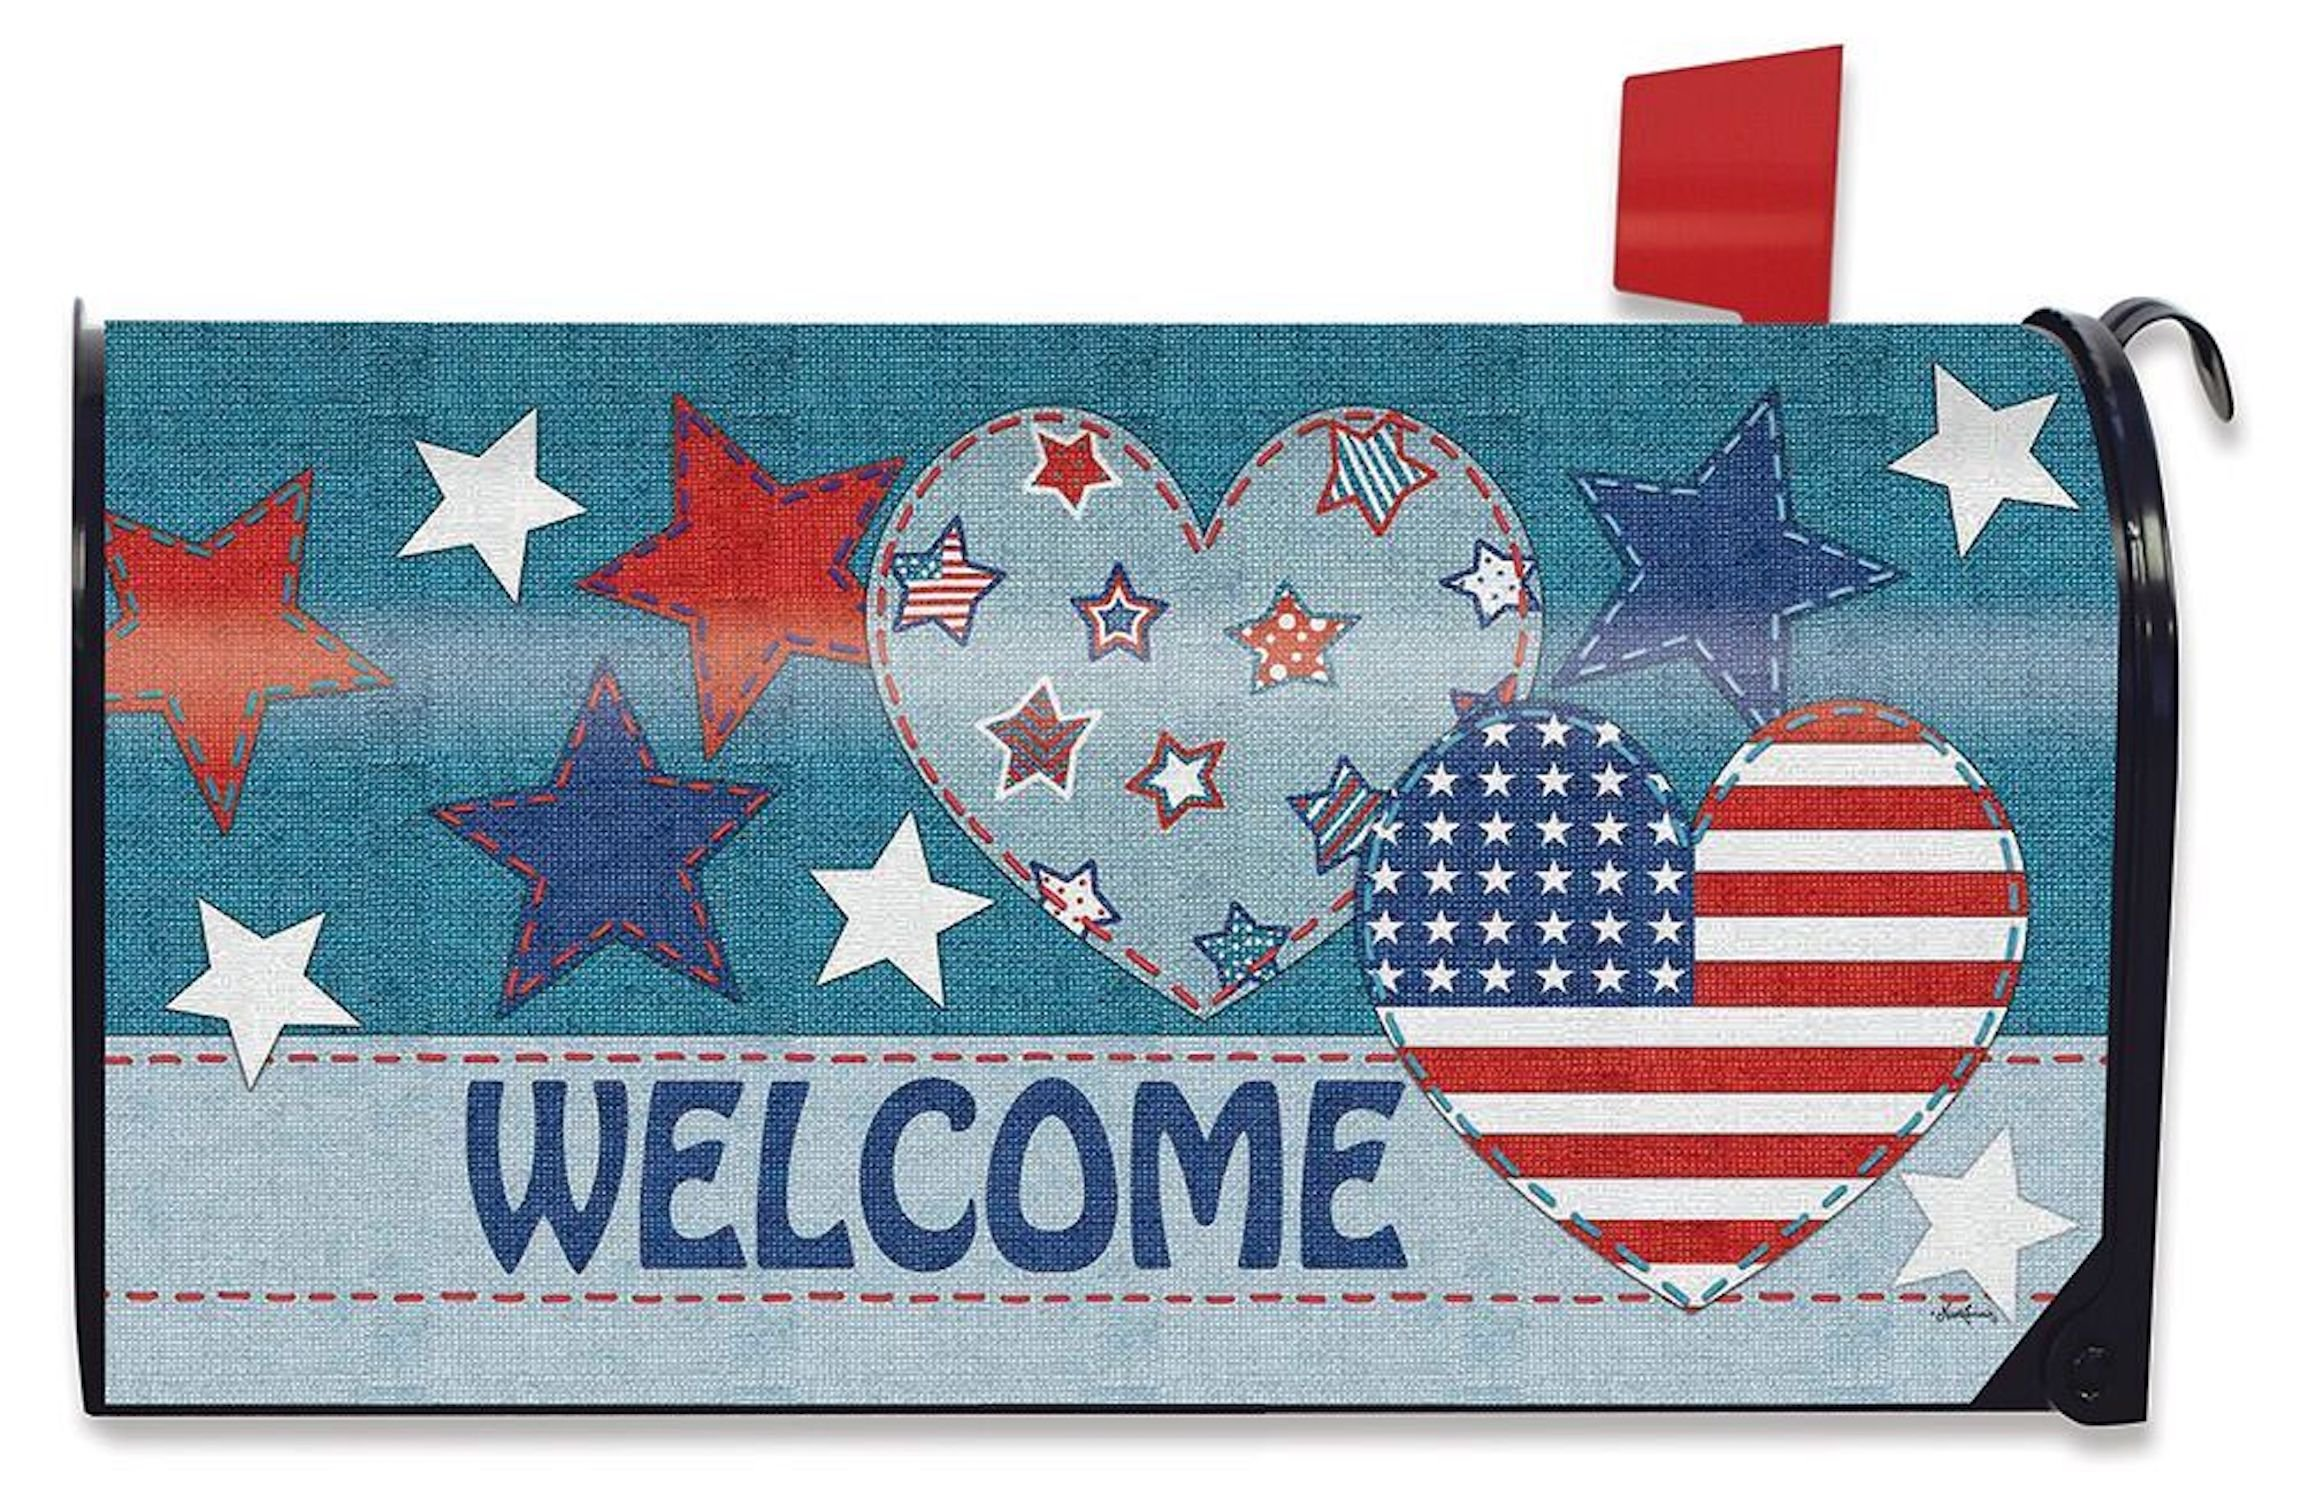 Briarwood Lane Patriotic Patchwork Welcome Mailbox Cover Primitive Hearts Stars Standard